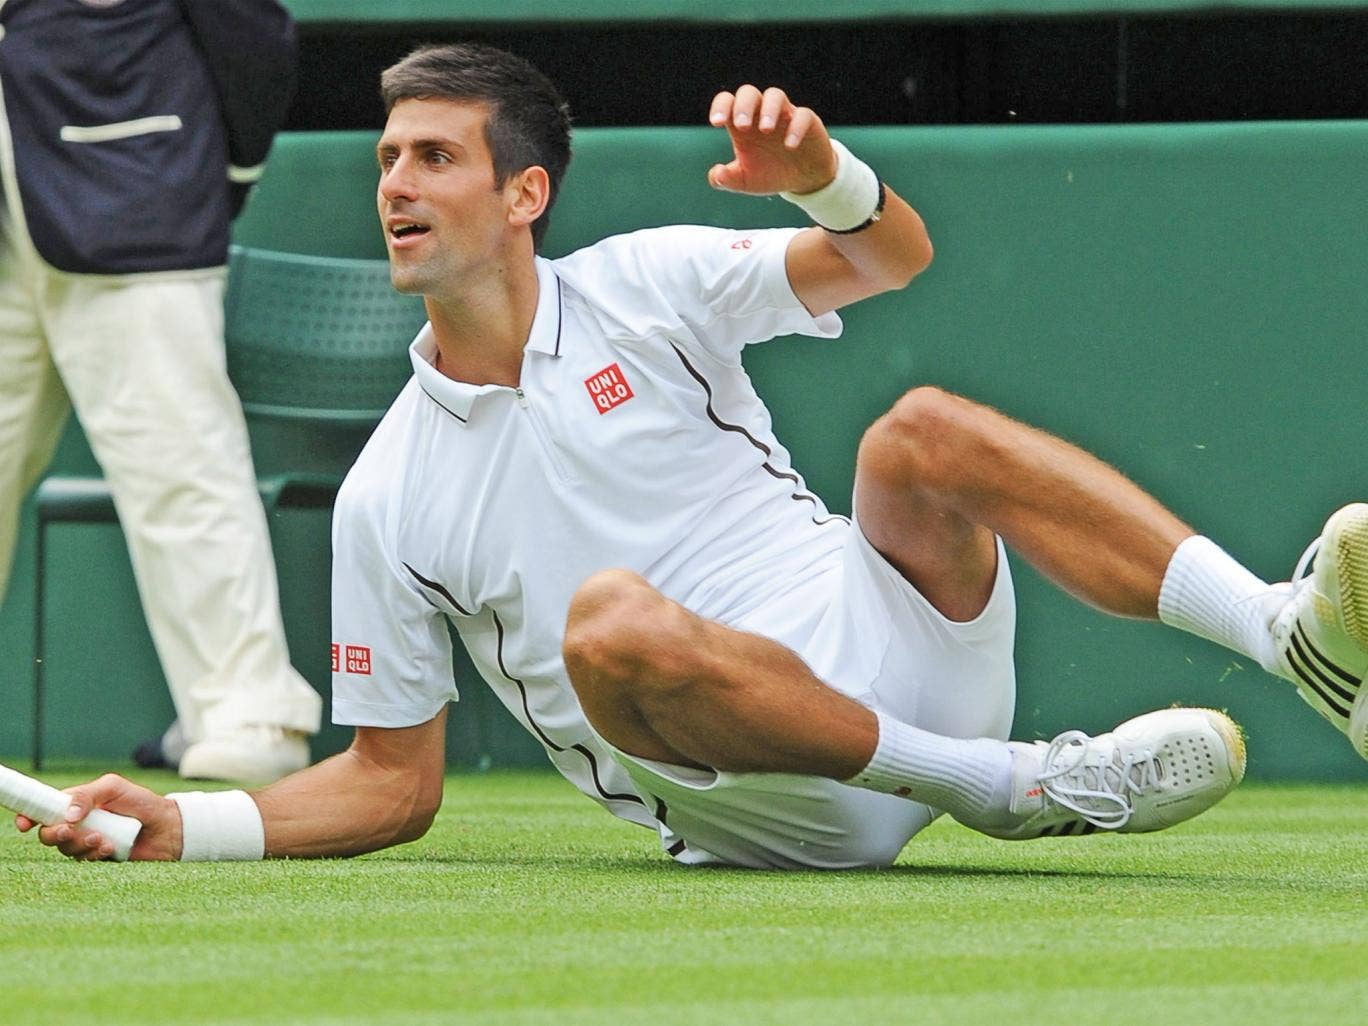 Novak Djokovic takes a tumble during his match against Florian Mayer